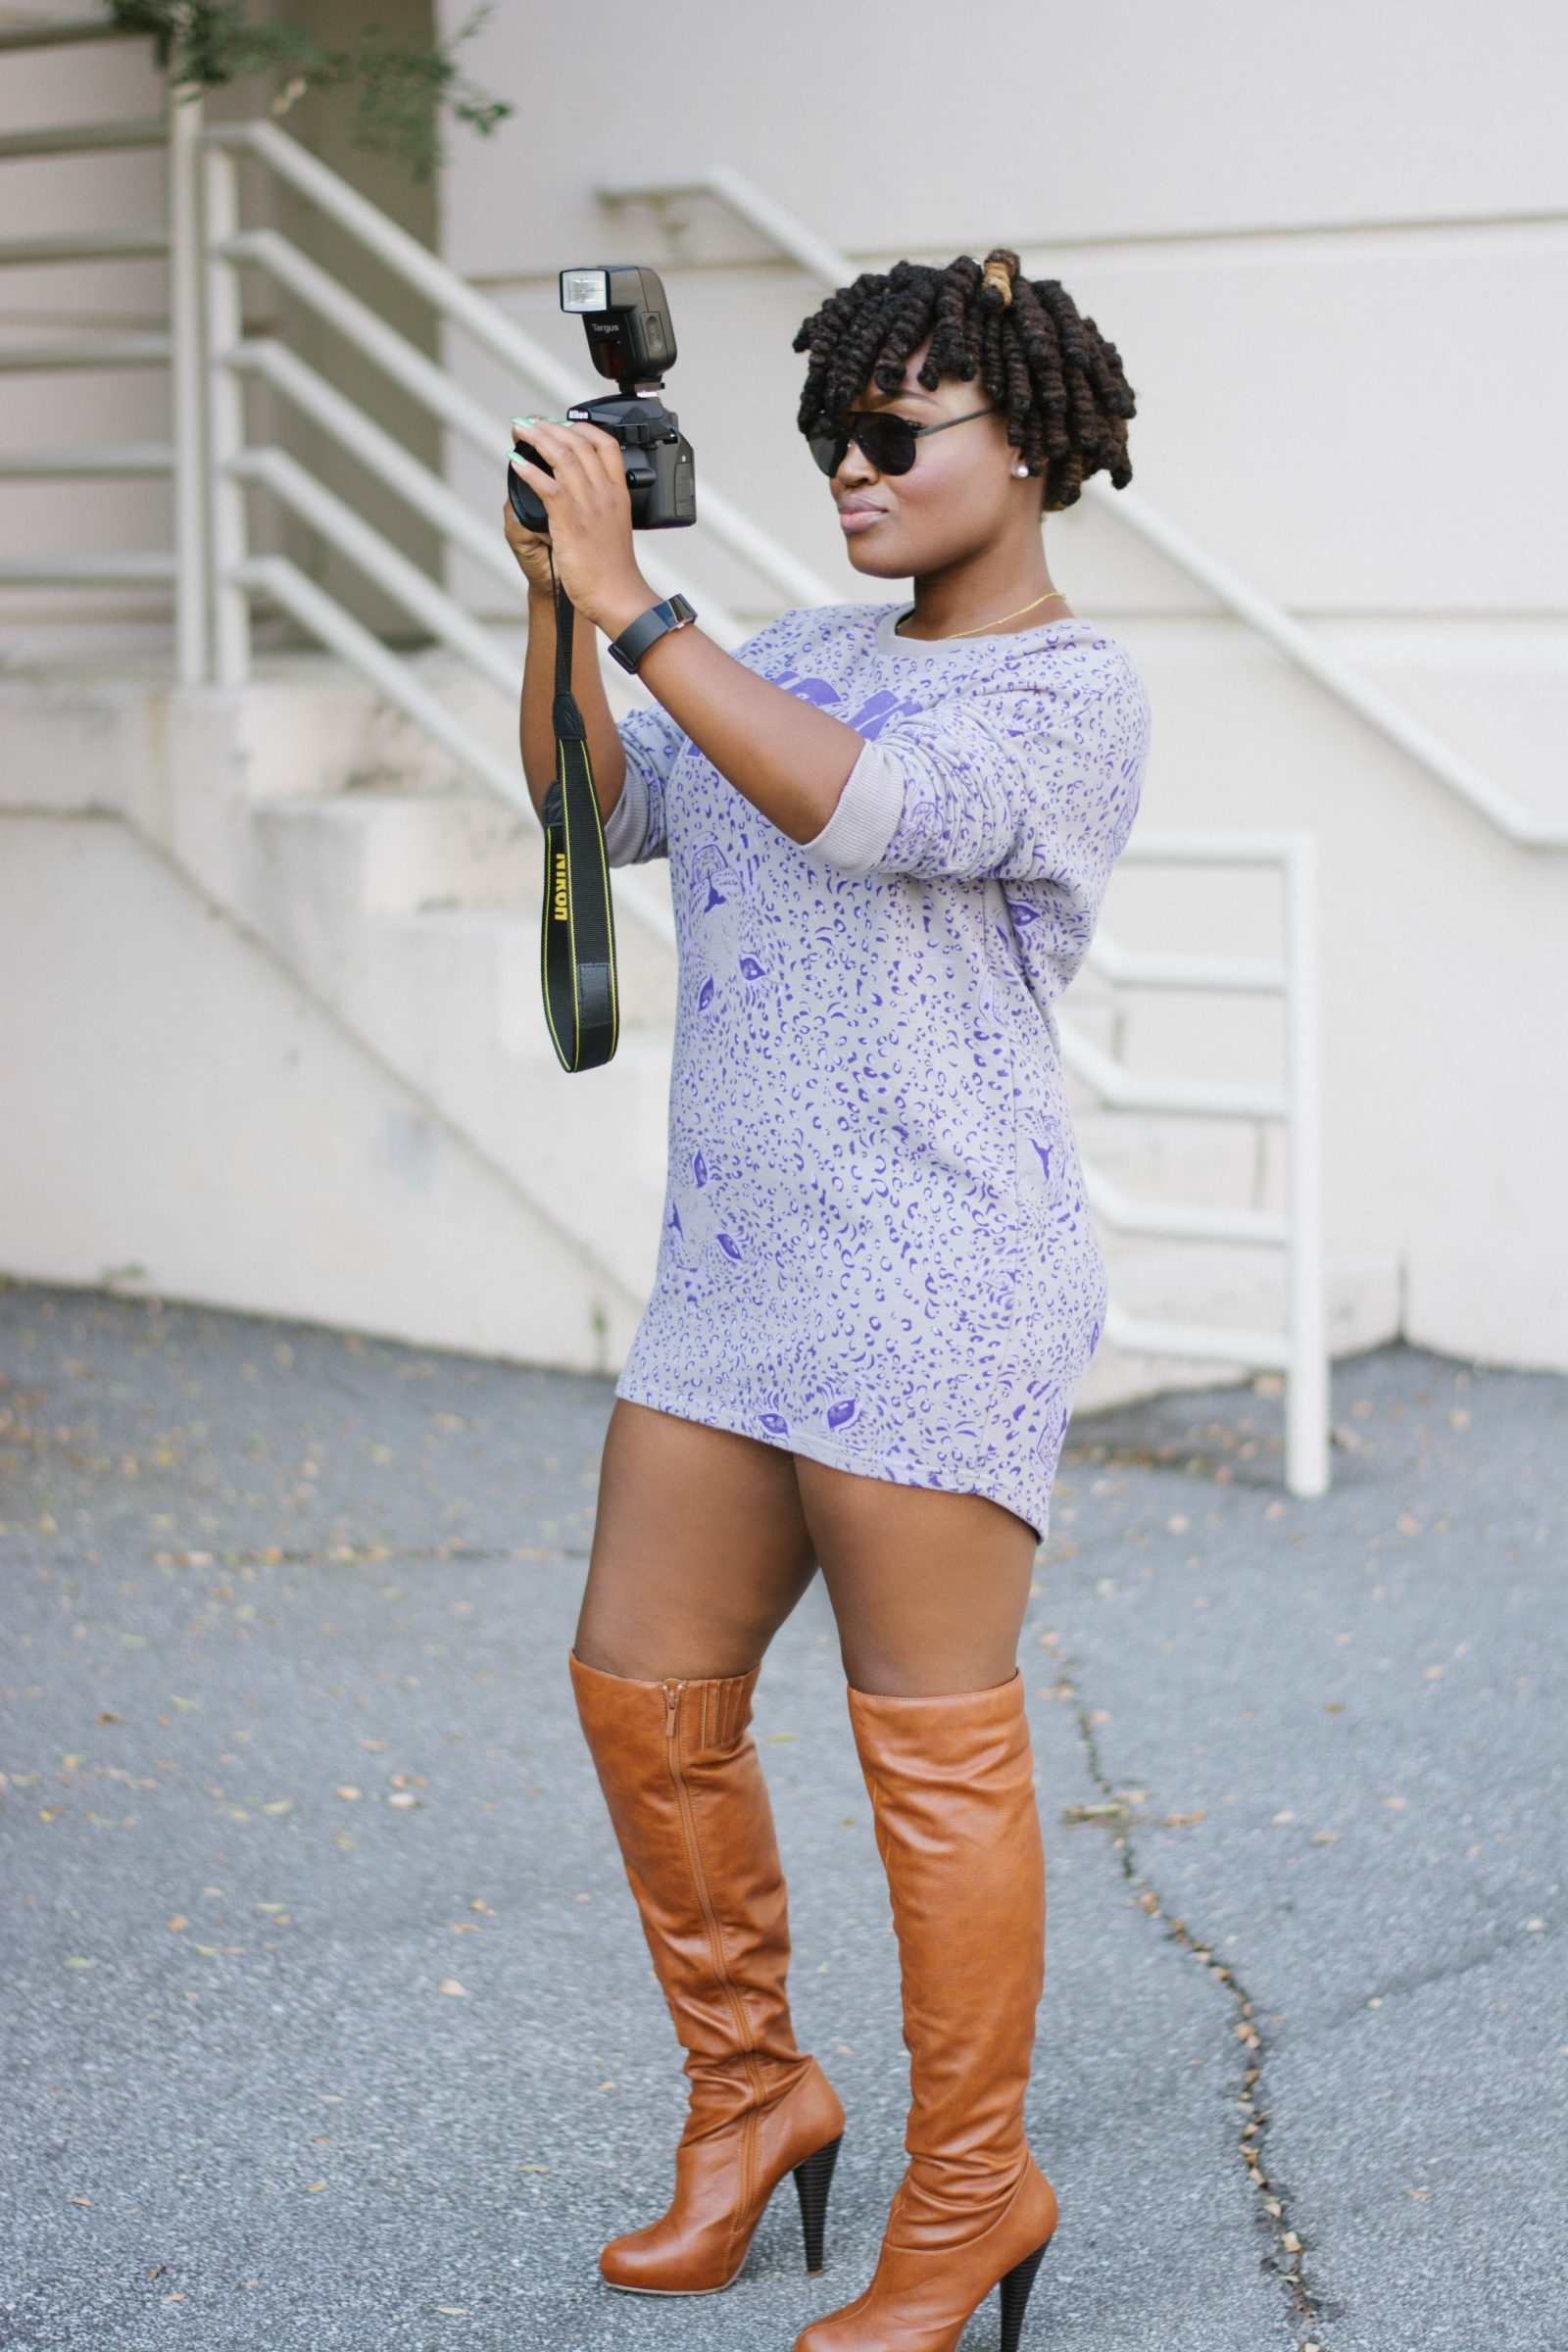 H&M FALL SWEATER DRESS OVER BOOTS